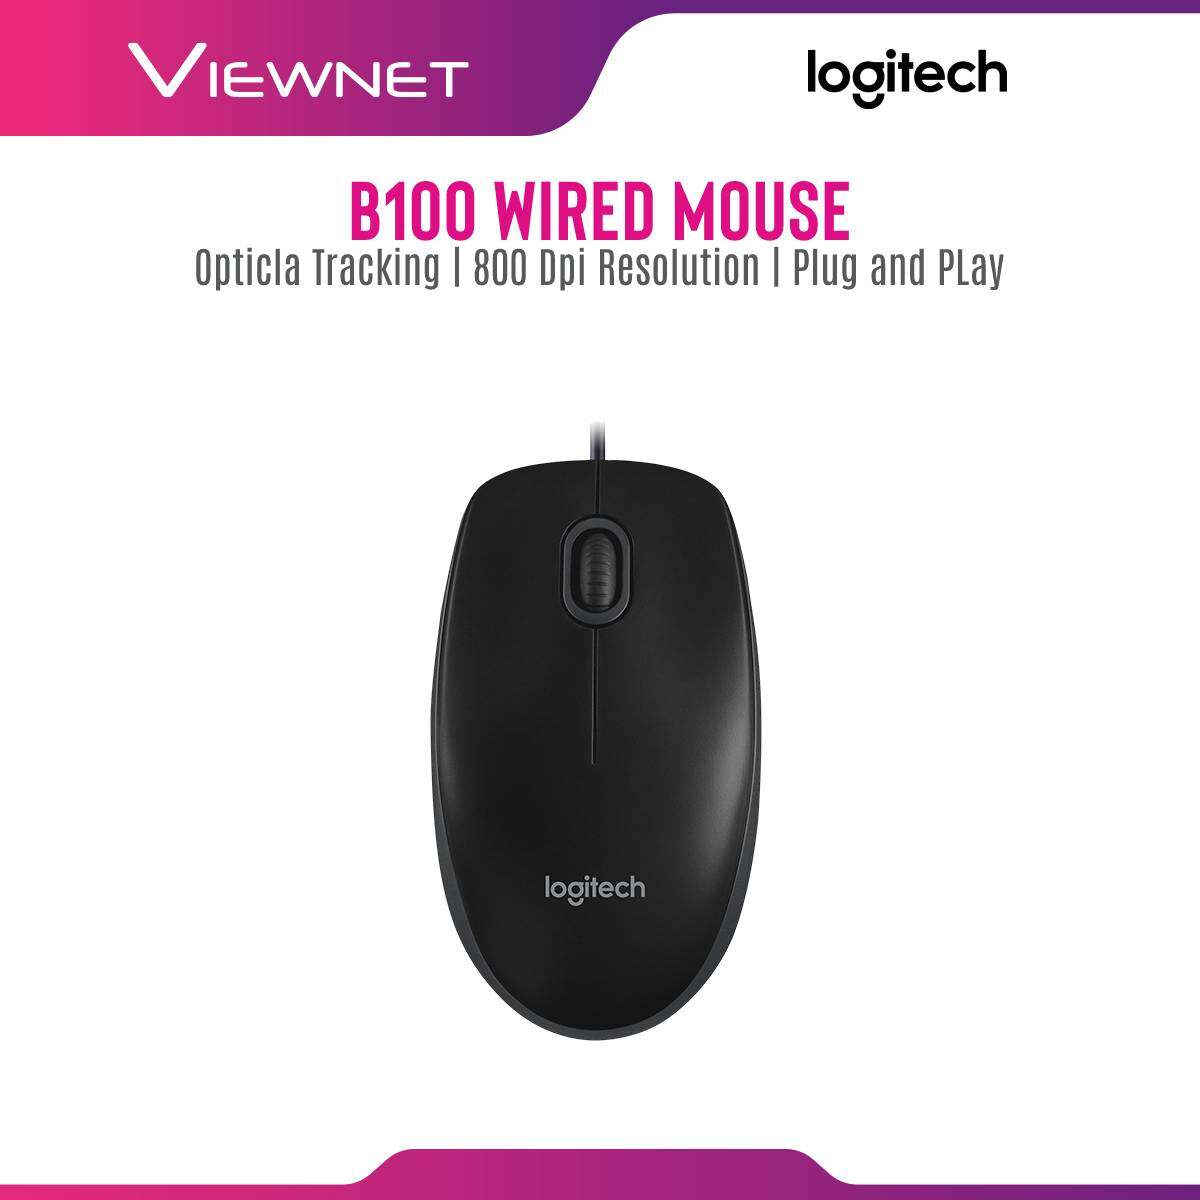 Logitech B100 Mouse with USB Connection, Optical Tracking, 800 Dpi Resolution